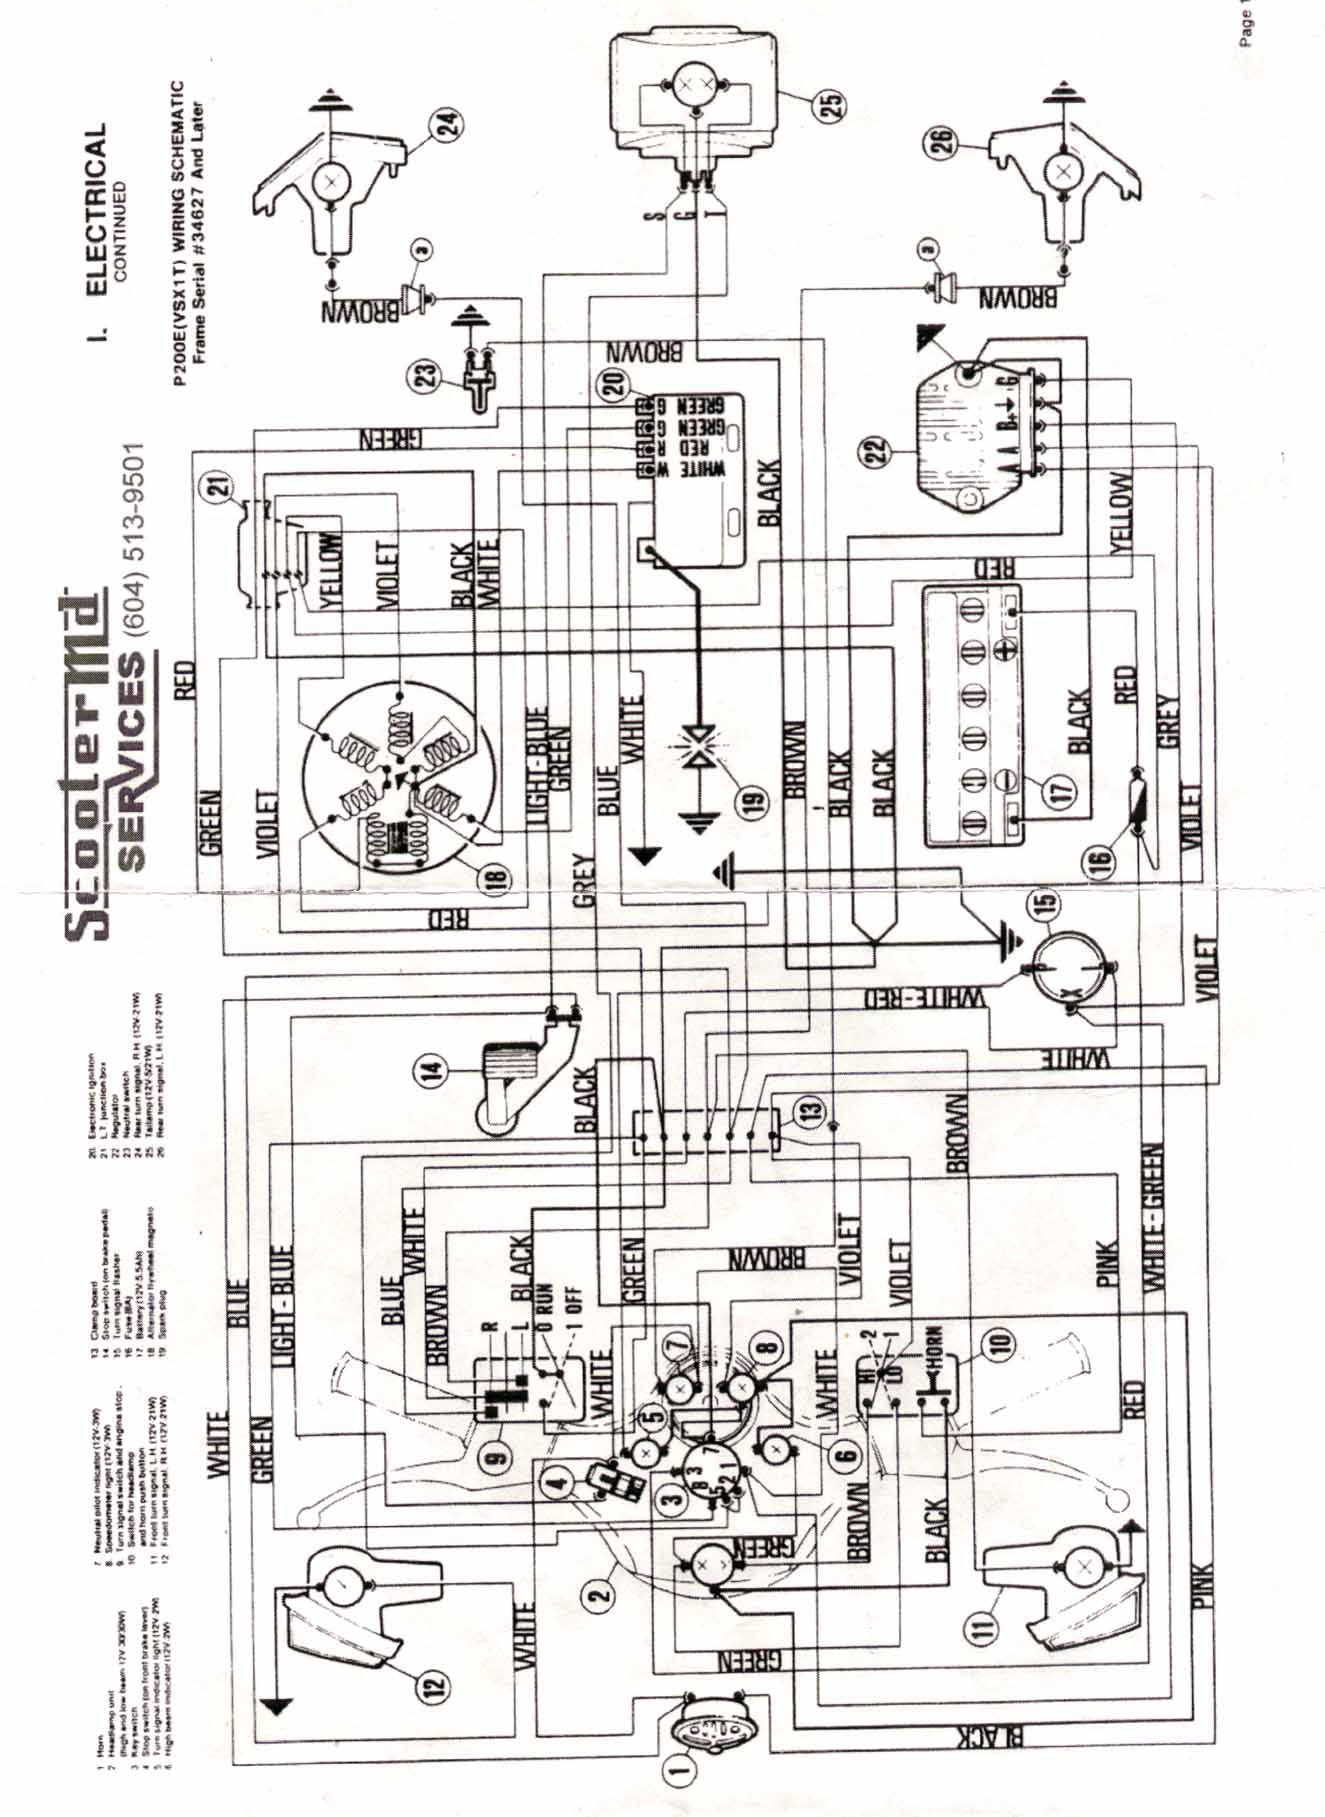 p200diag2 vespa p series maintenance & repair vespa px 150 wiring diagram at bakdesigns.co